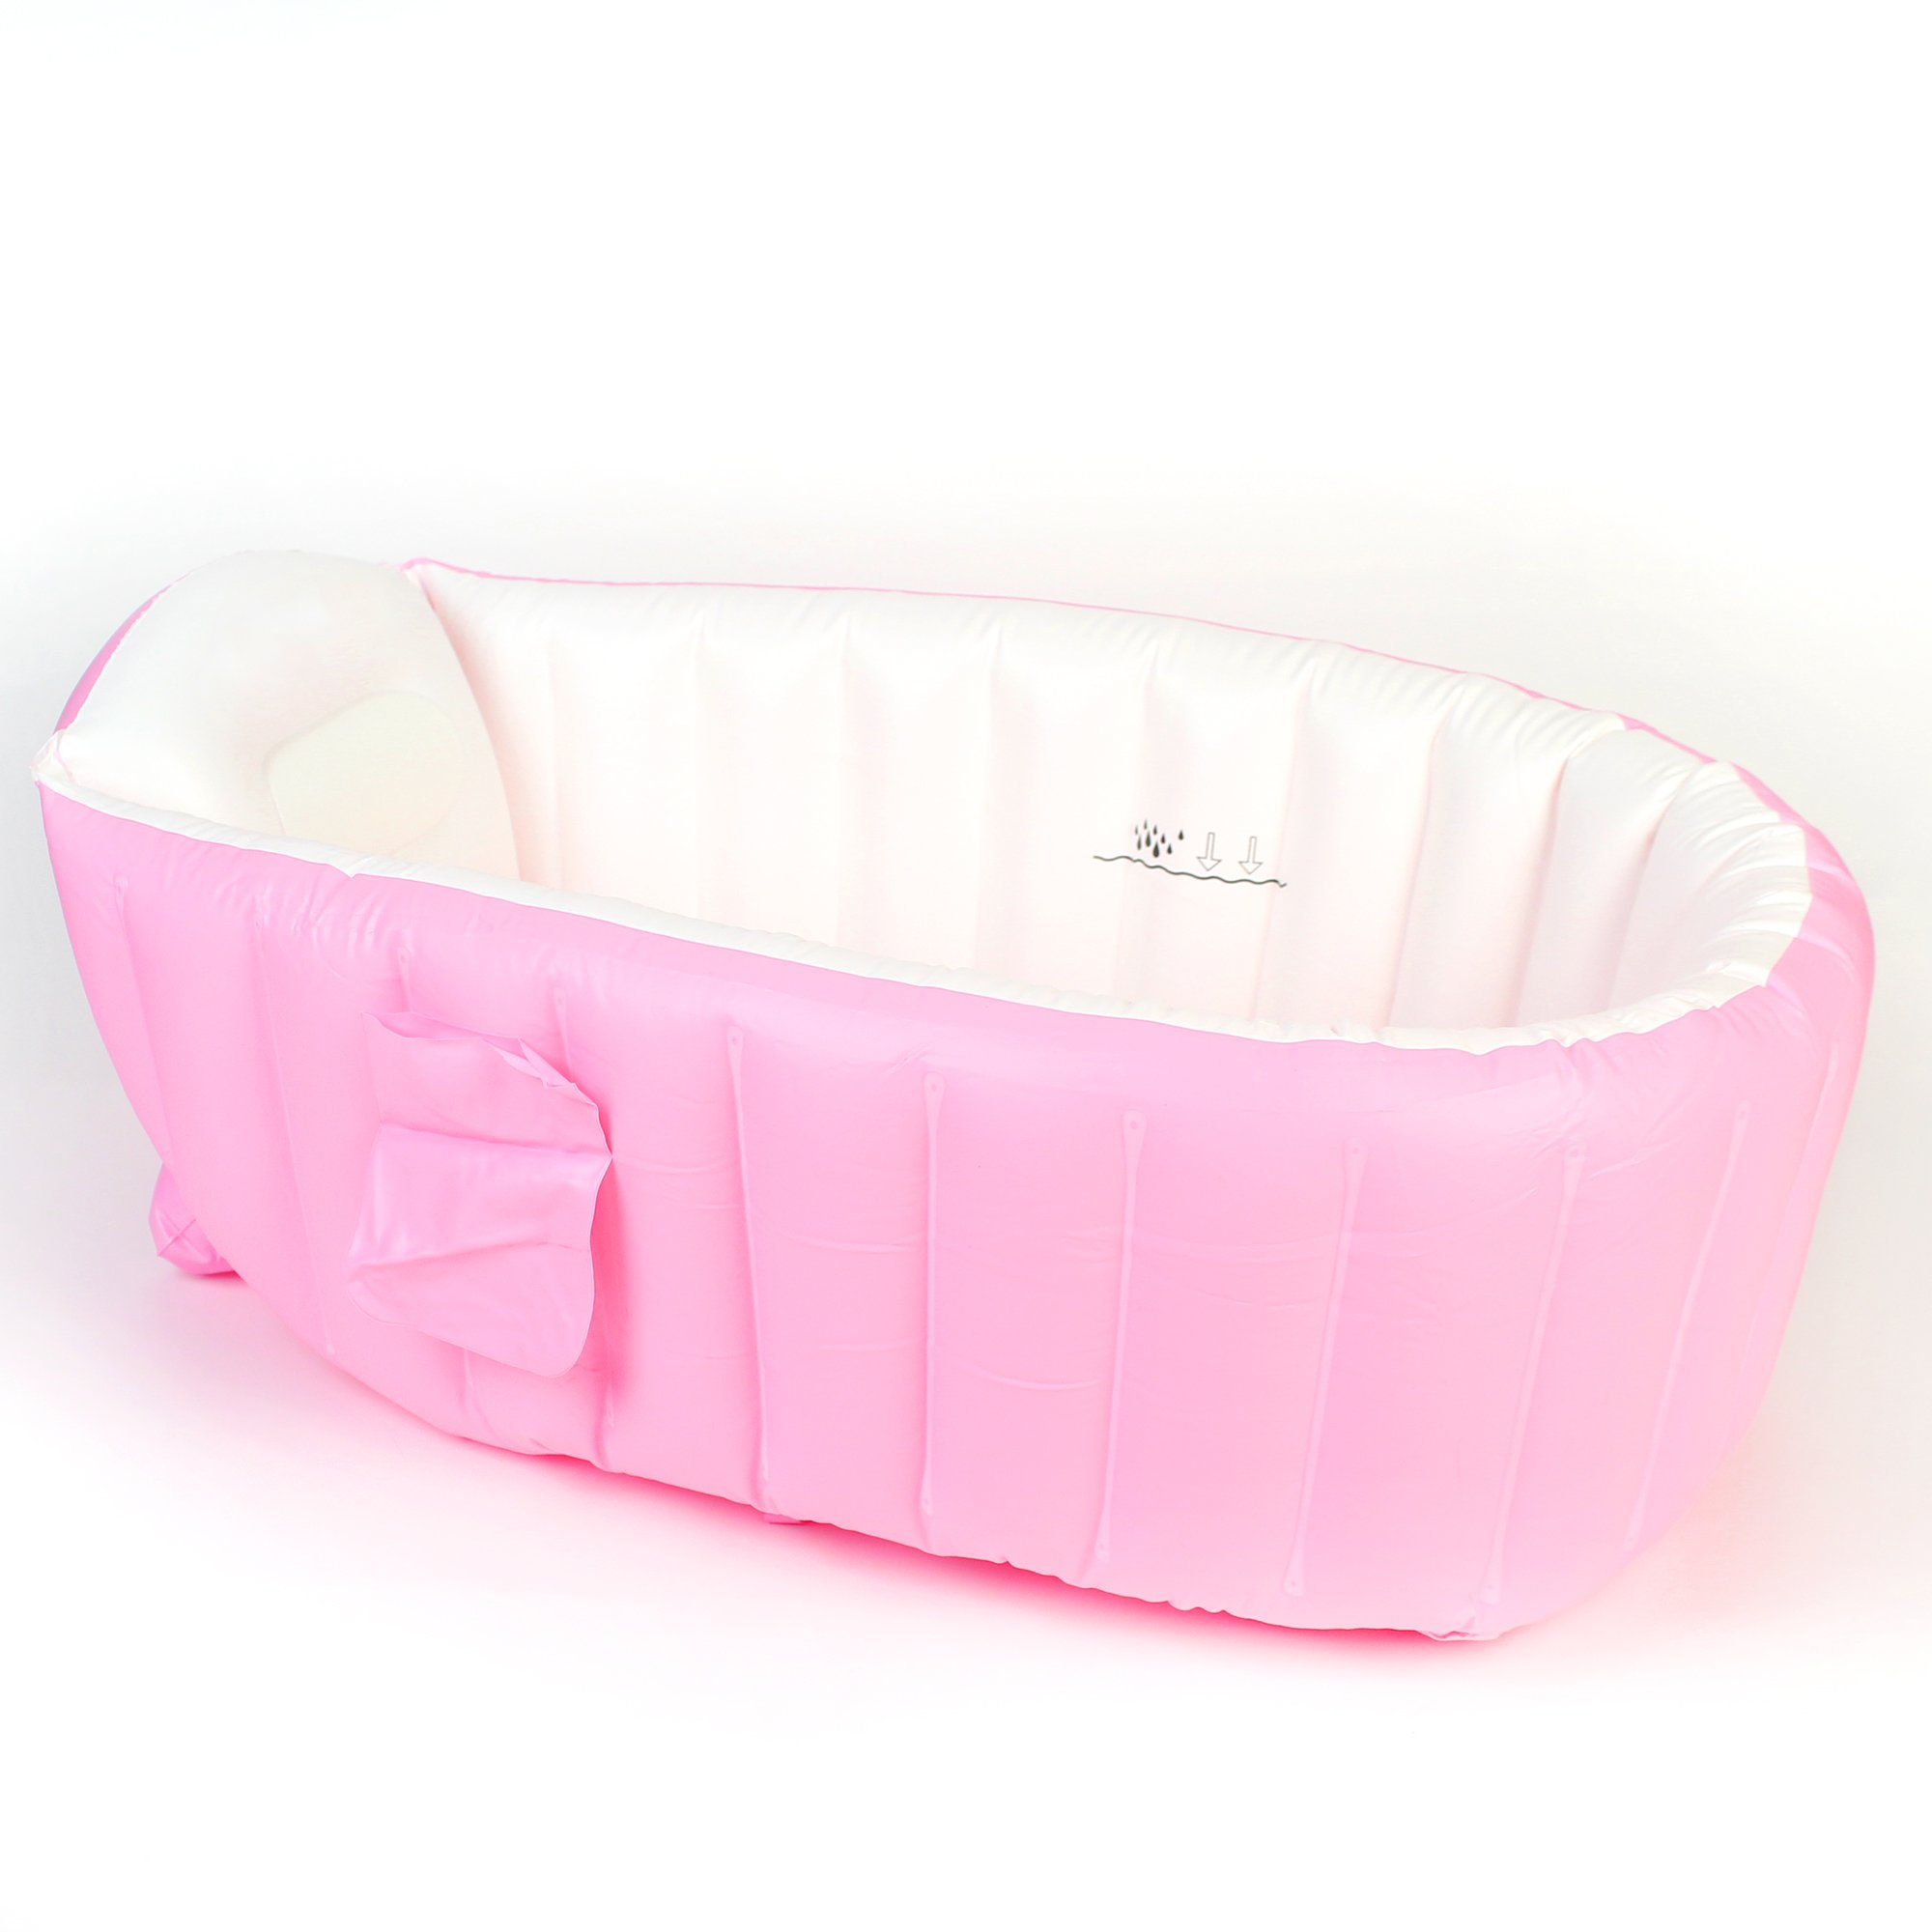 Salcon Baby Inflatable Bathtub-Infant Travel Non Slip Bathing Tub-Pink